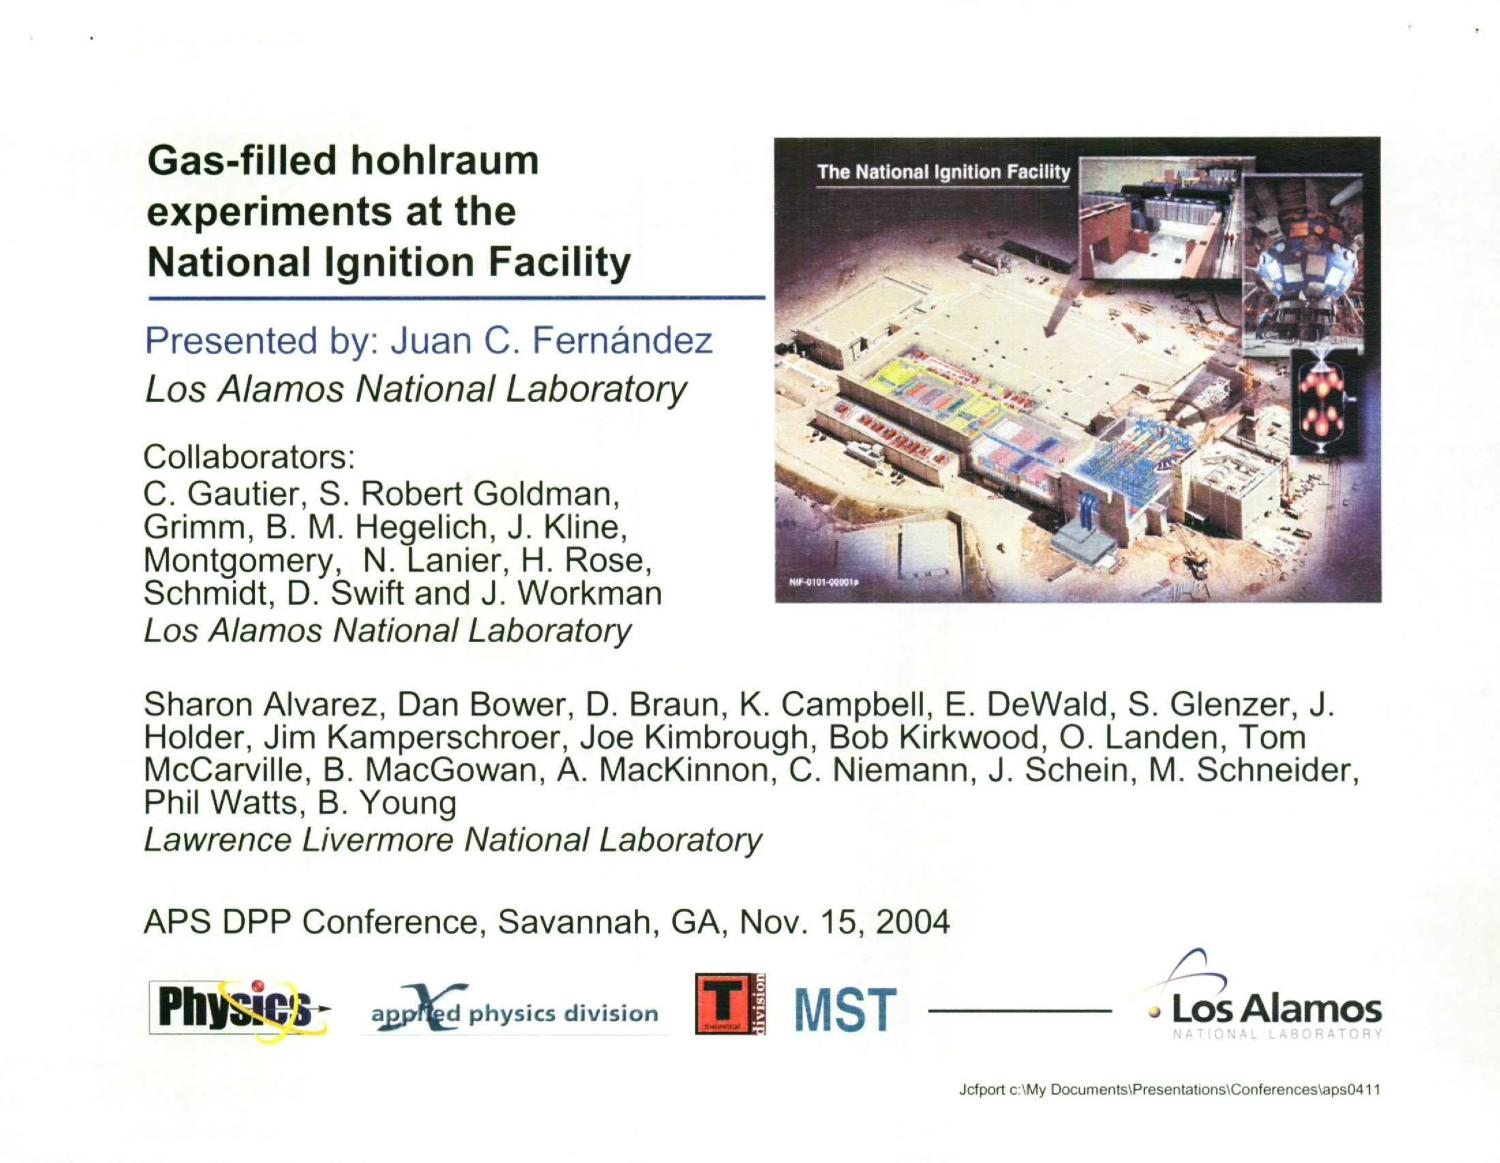 Synchrotron-based high-pressure research in materials science                                                                                                      [Sequence #]: 2 of 14